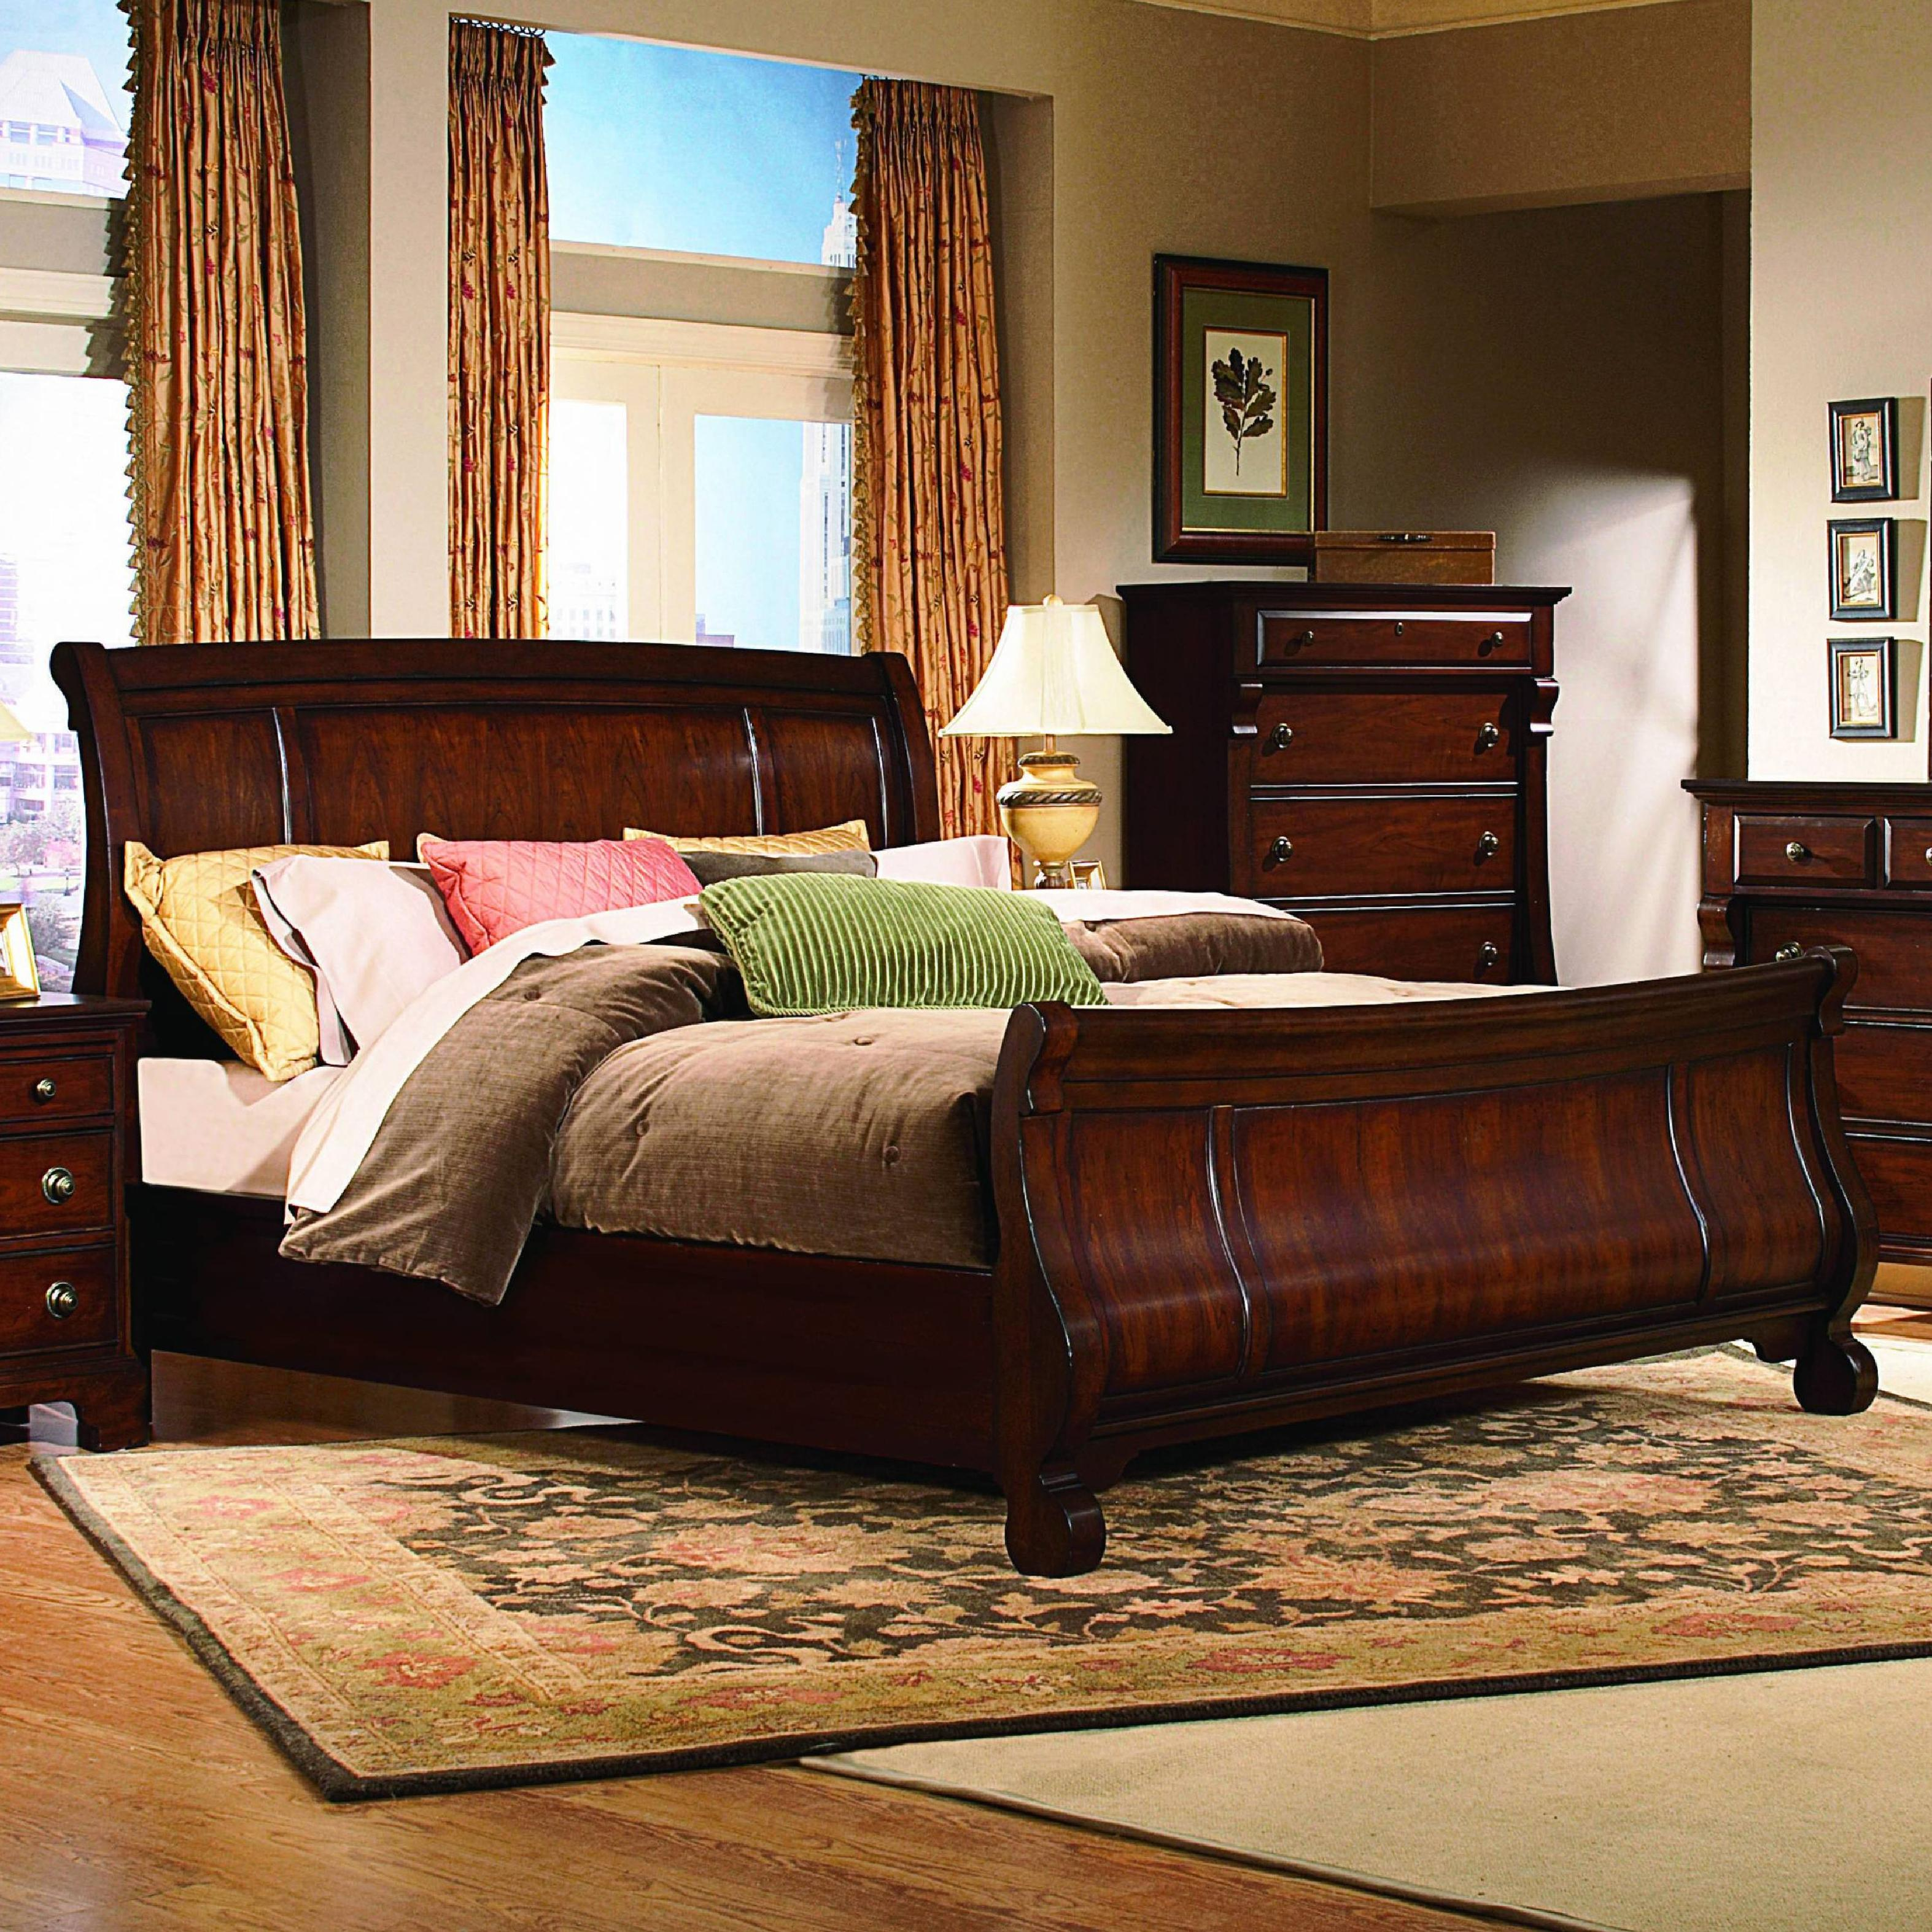 Attrayant Bed Shown May Not Represent Size Indicated. Vaughan Furniture Georgetown ...